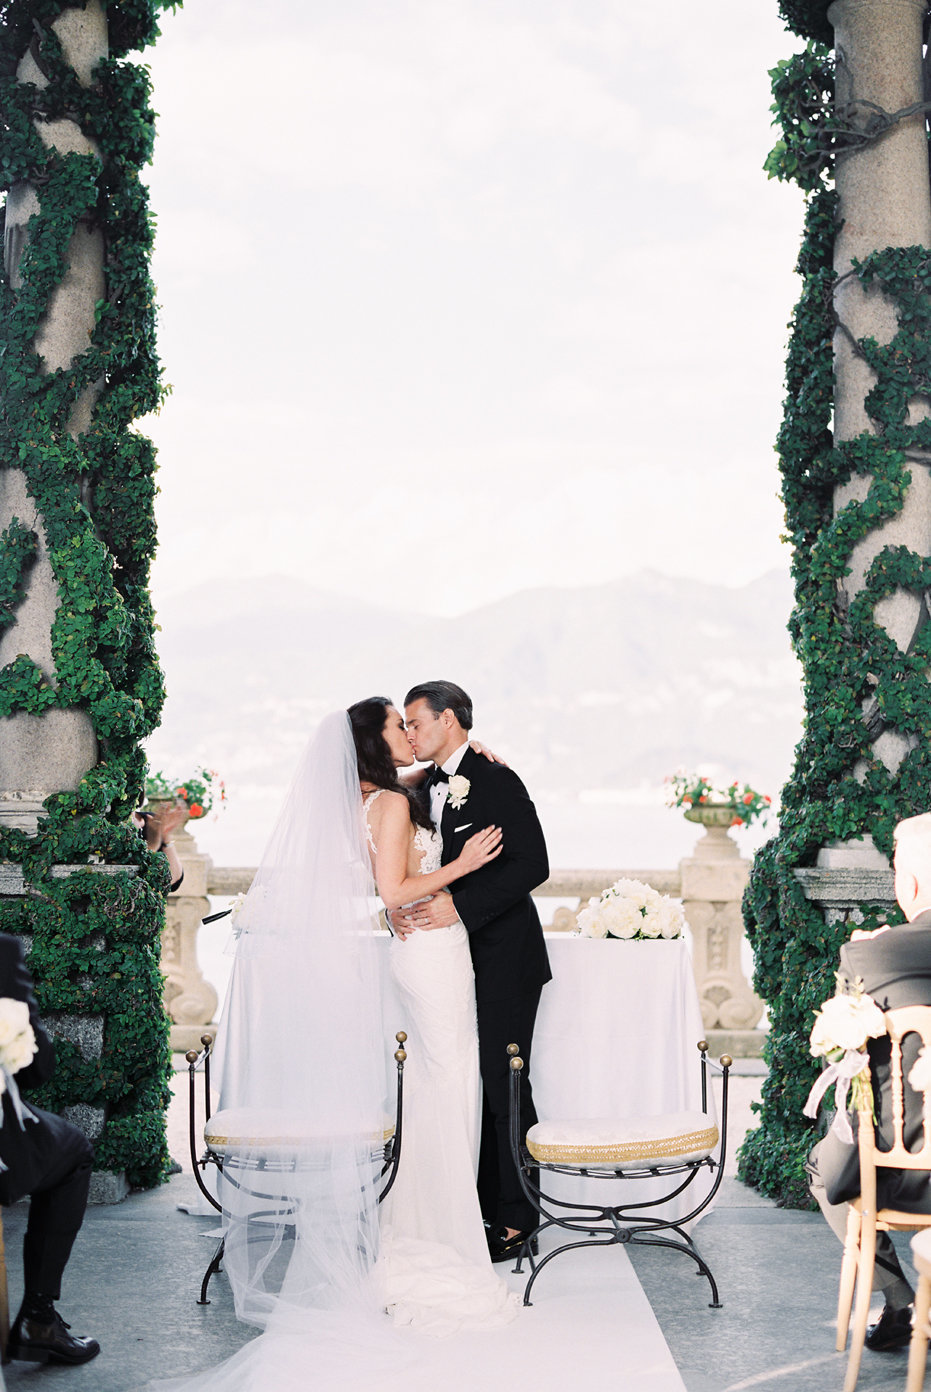 lake_como_italy_villa_balbianello_destination_wedding_melanie_gabrielle_055